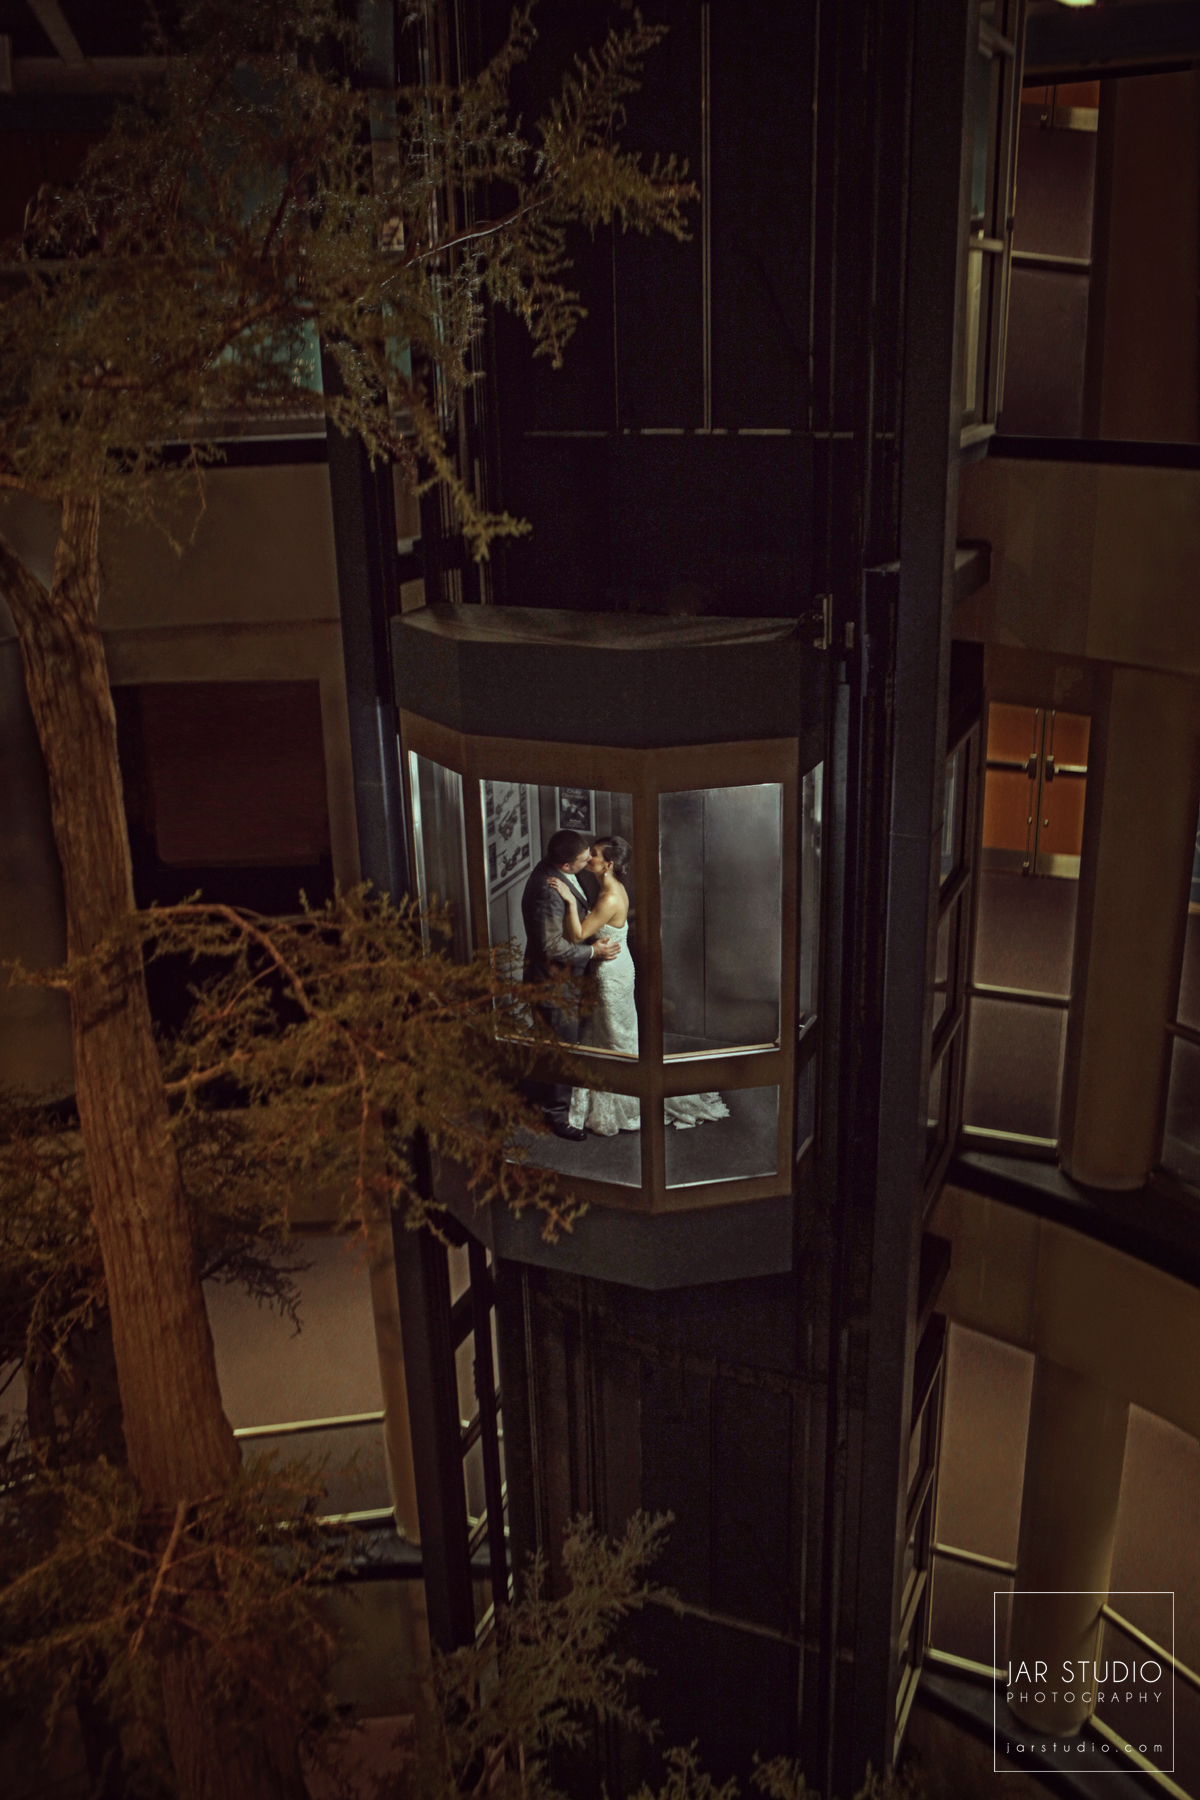 25-jarstudio-romantic-original-wedding-photography-orlando-science-center-elevator.jpg